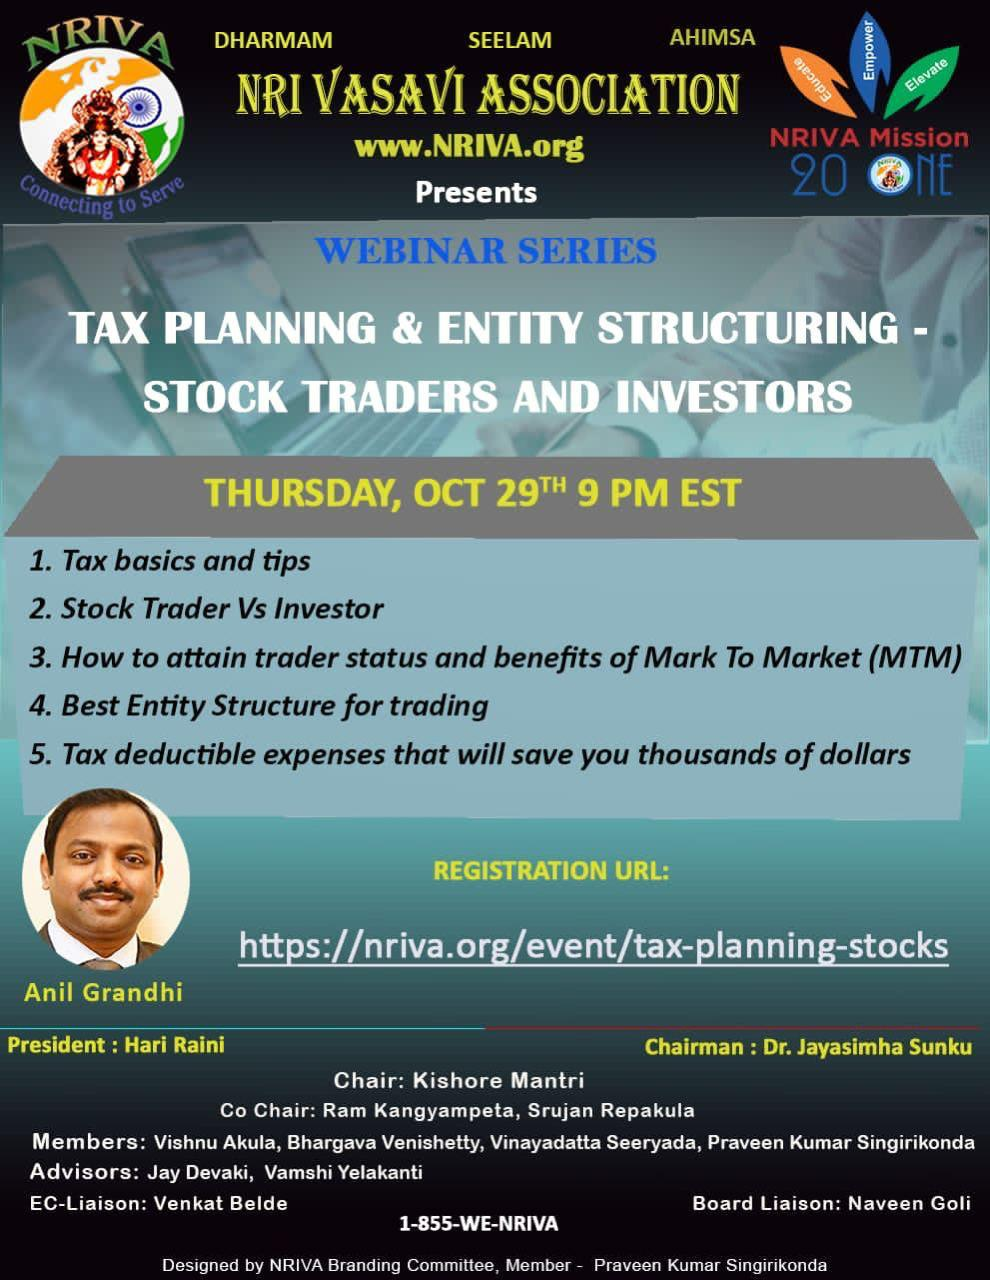 Tax Planning & Entity Structuring